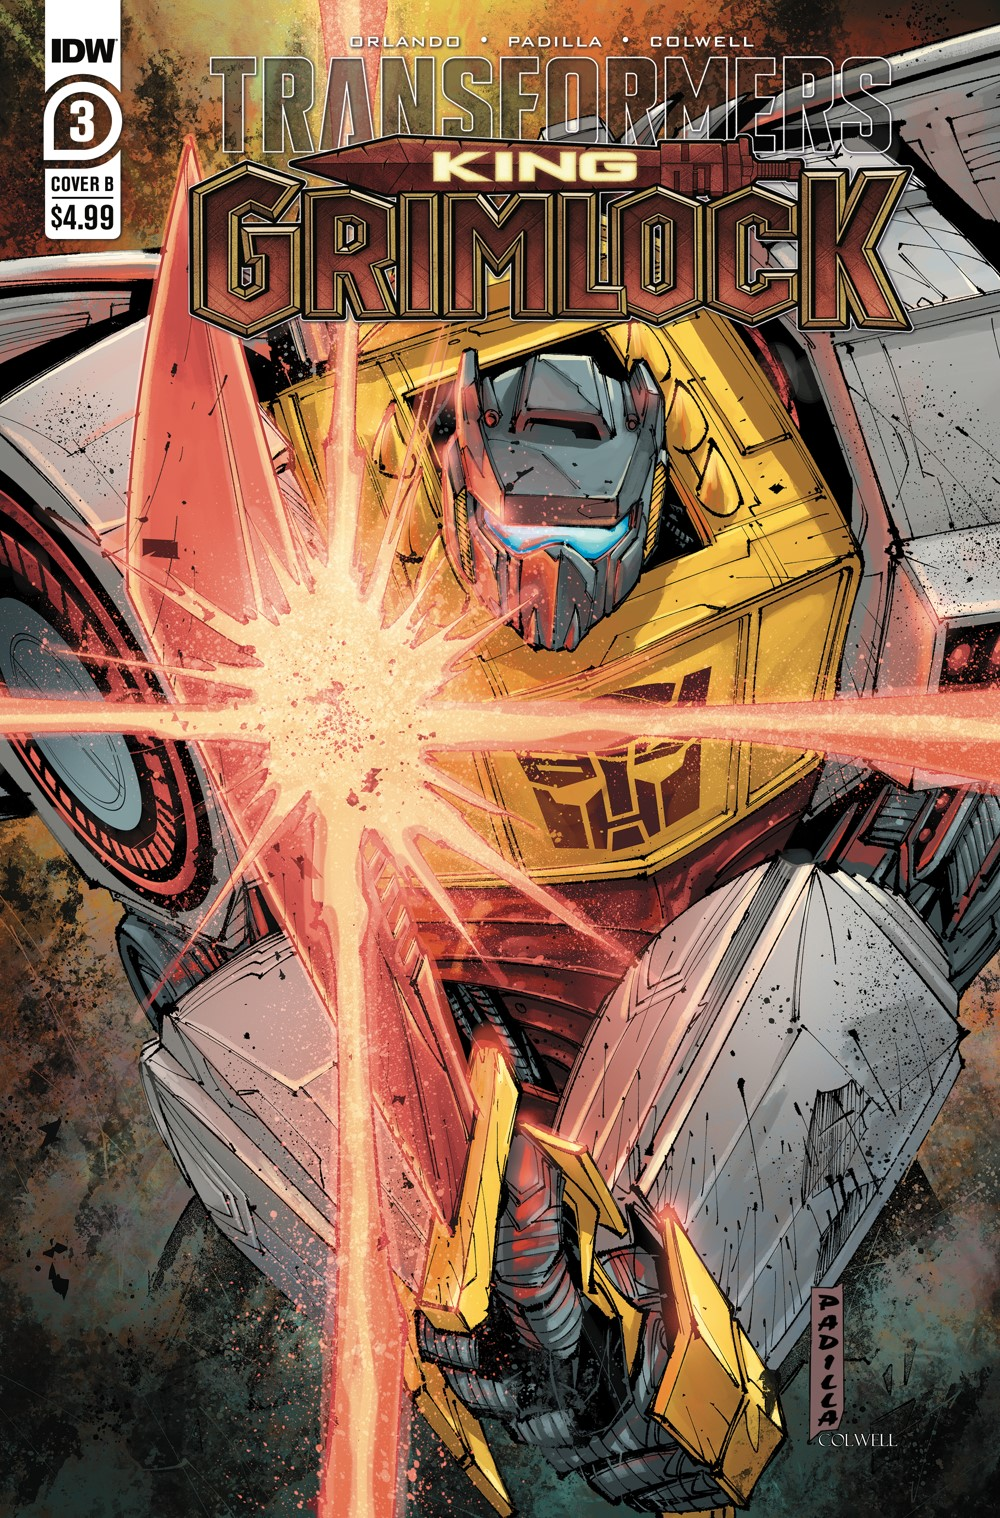 TFGrimlock-03-Cover-B ComicList: IDW Publishing New Releases for 10/13/2021